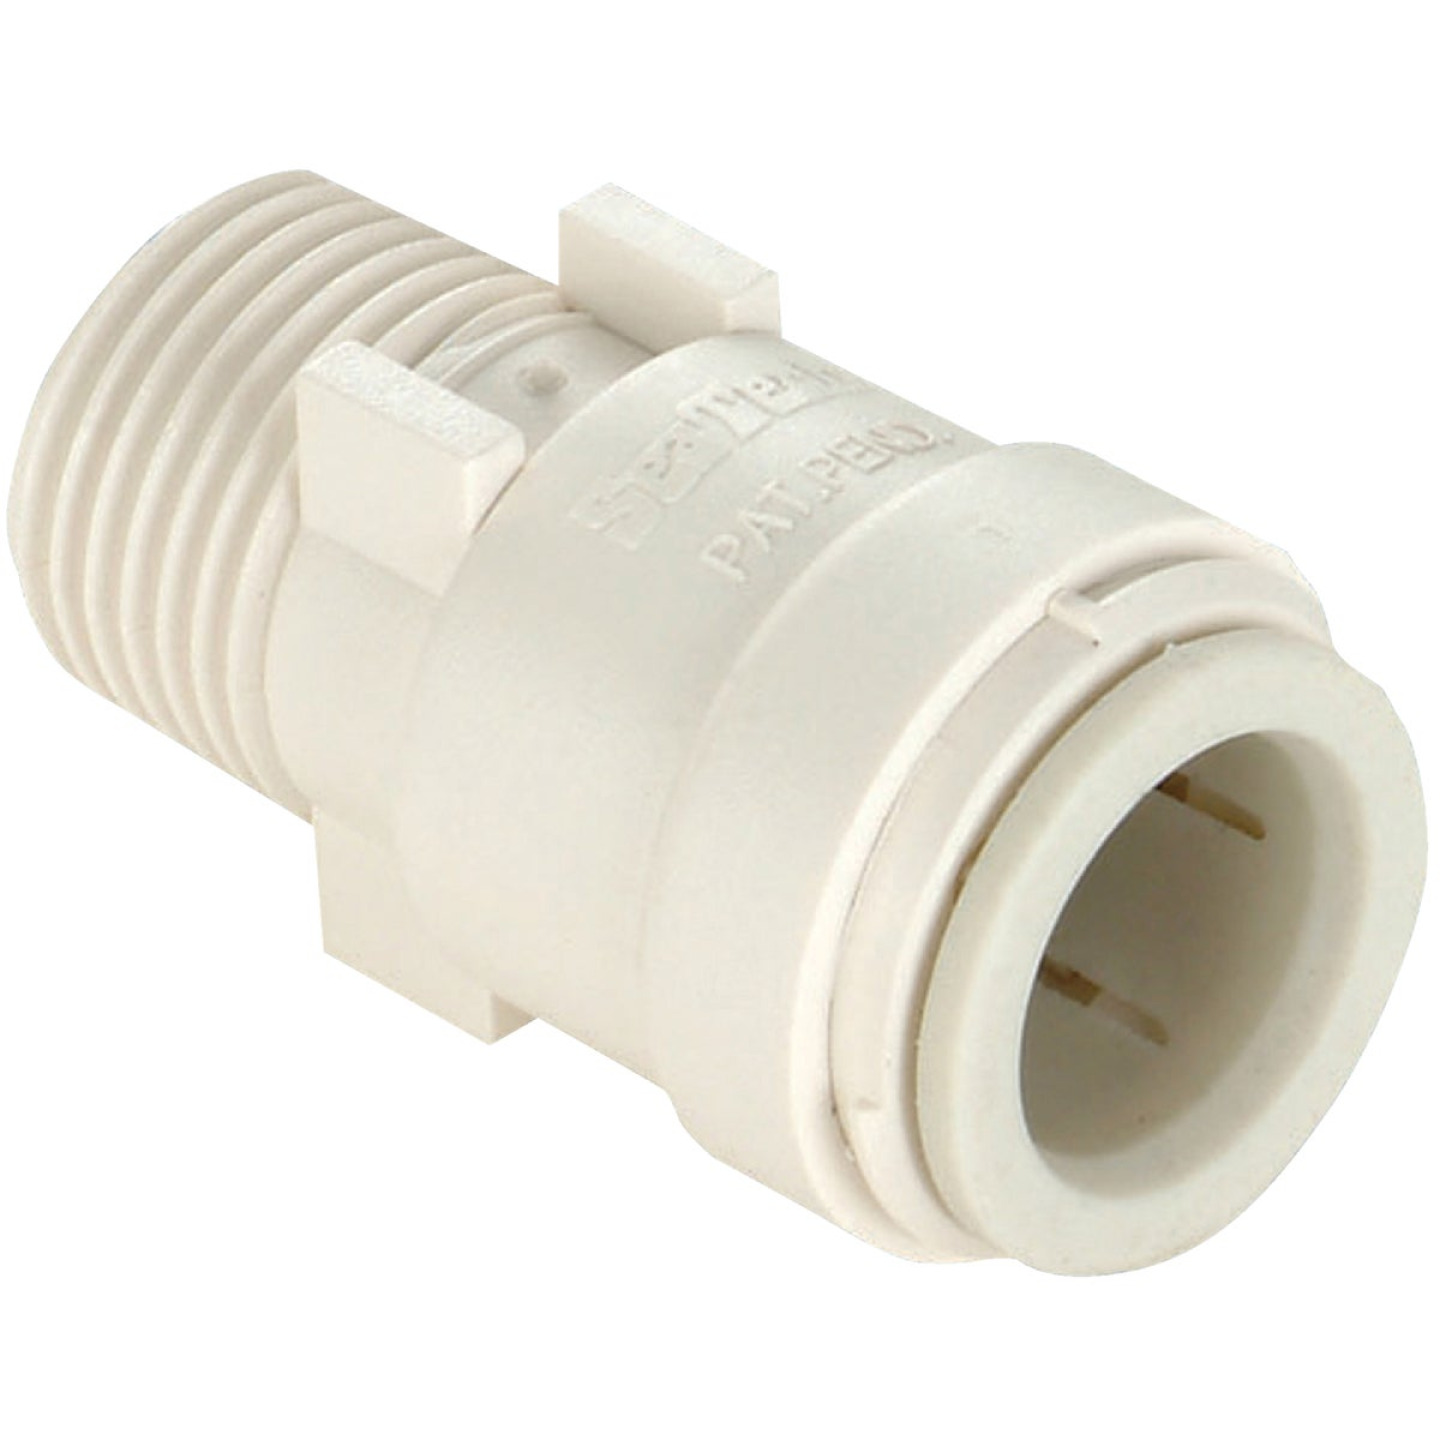 Watts 1/2 In. CTS x 3/8 In. MPT Quick Connect Plastic Connector Image 1